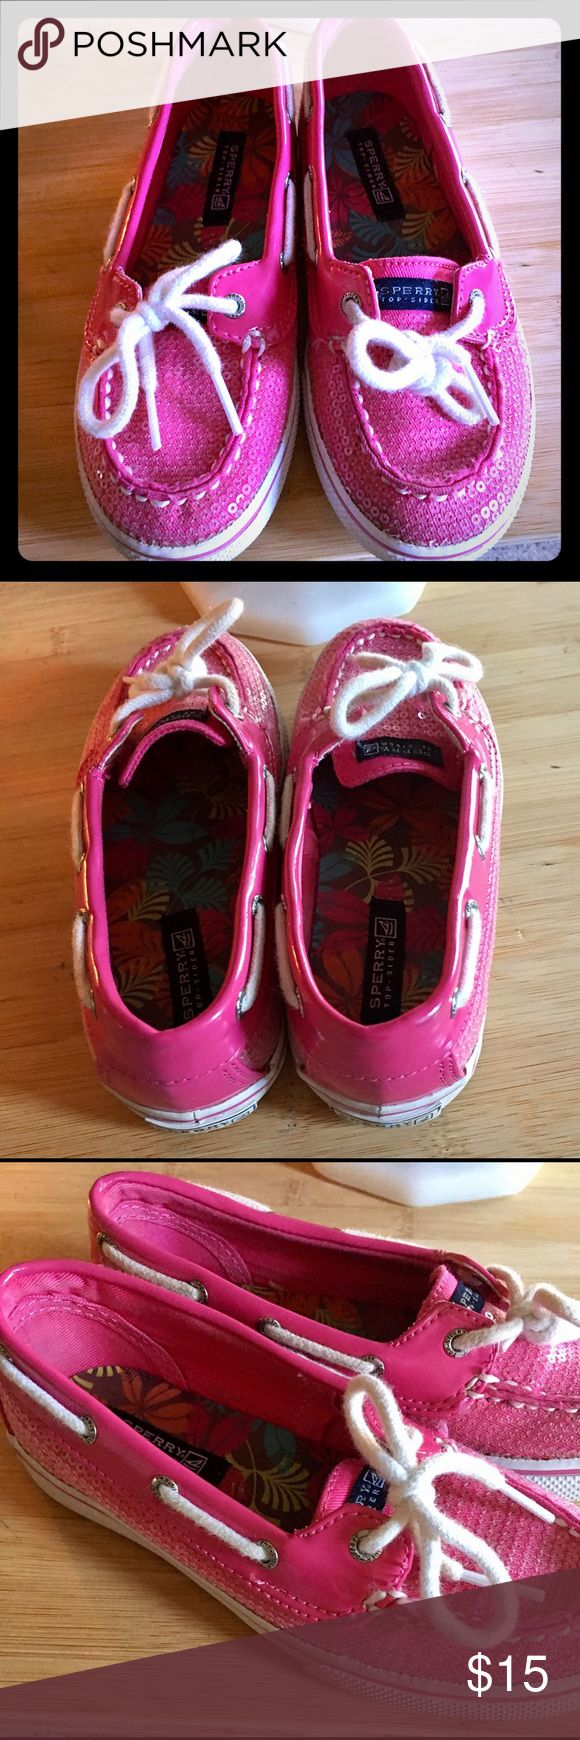 Pink Sperry Loafers Pink Sperry Loafers with a touch of sequins & shimmer. Excellent condition. Sperry Shoes Slippers